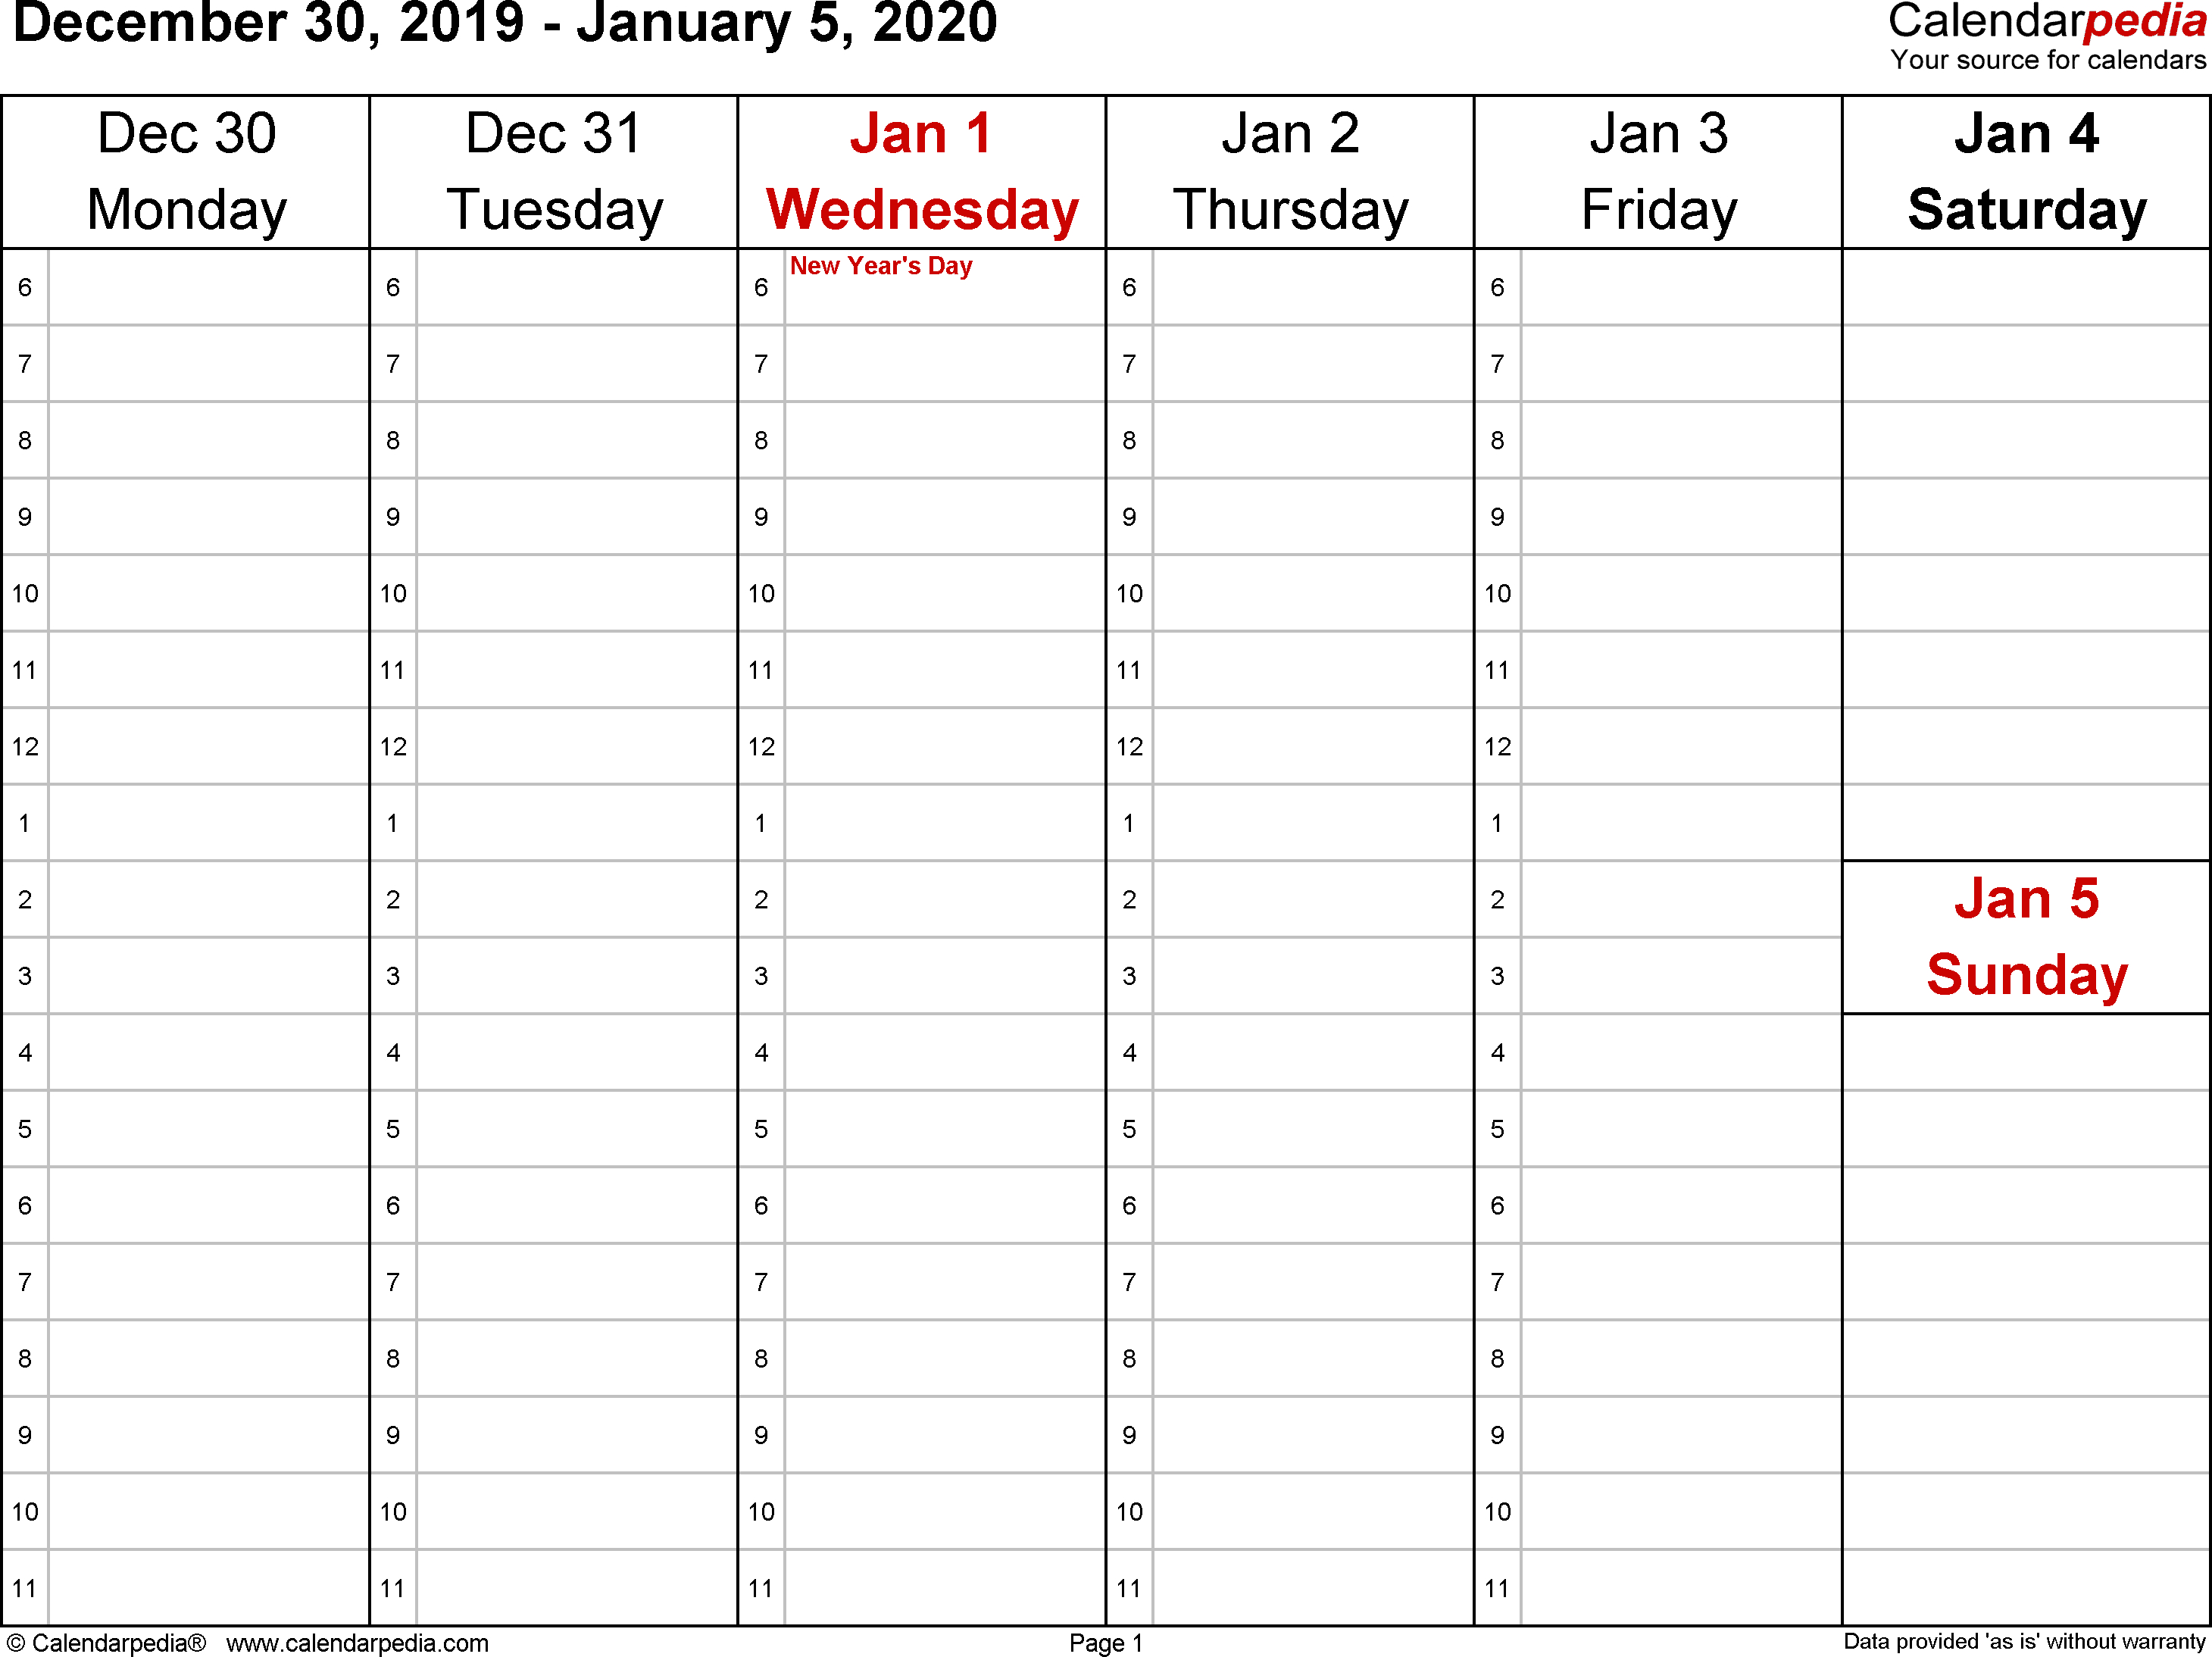 Weekly Calendar 2020 For Word - 12 Free Printable Templates